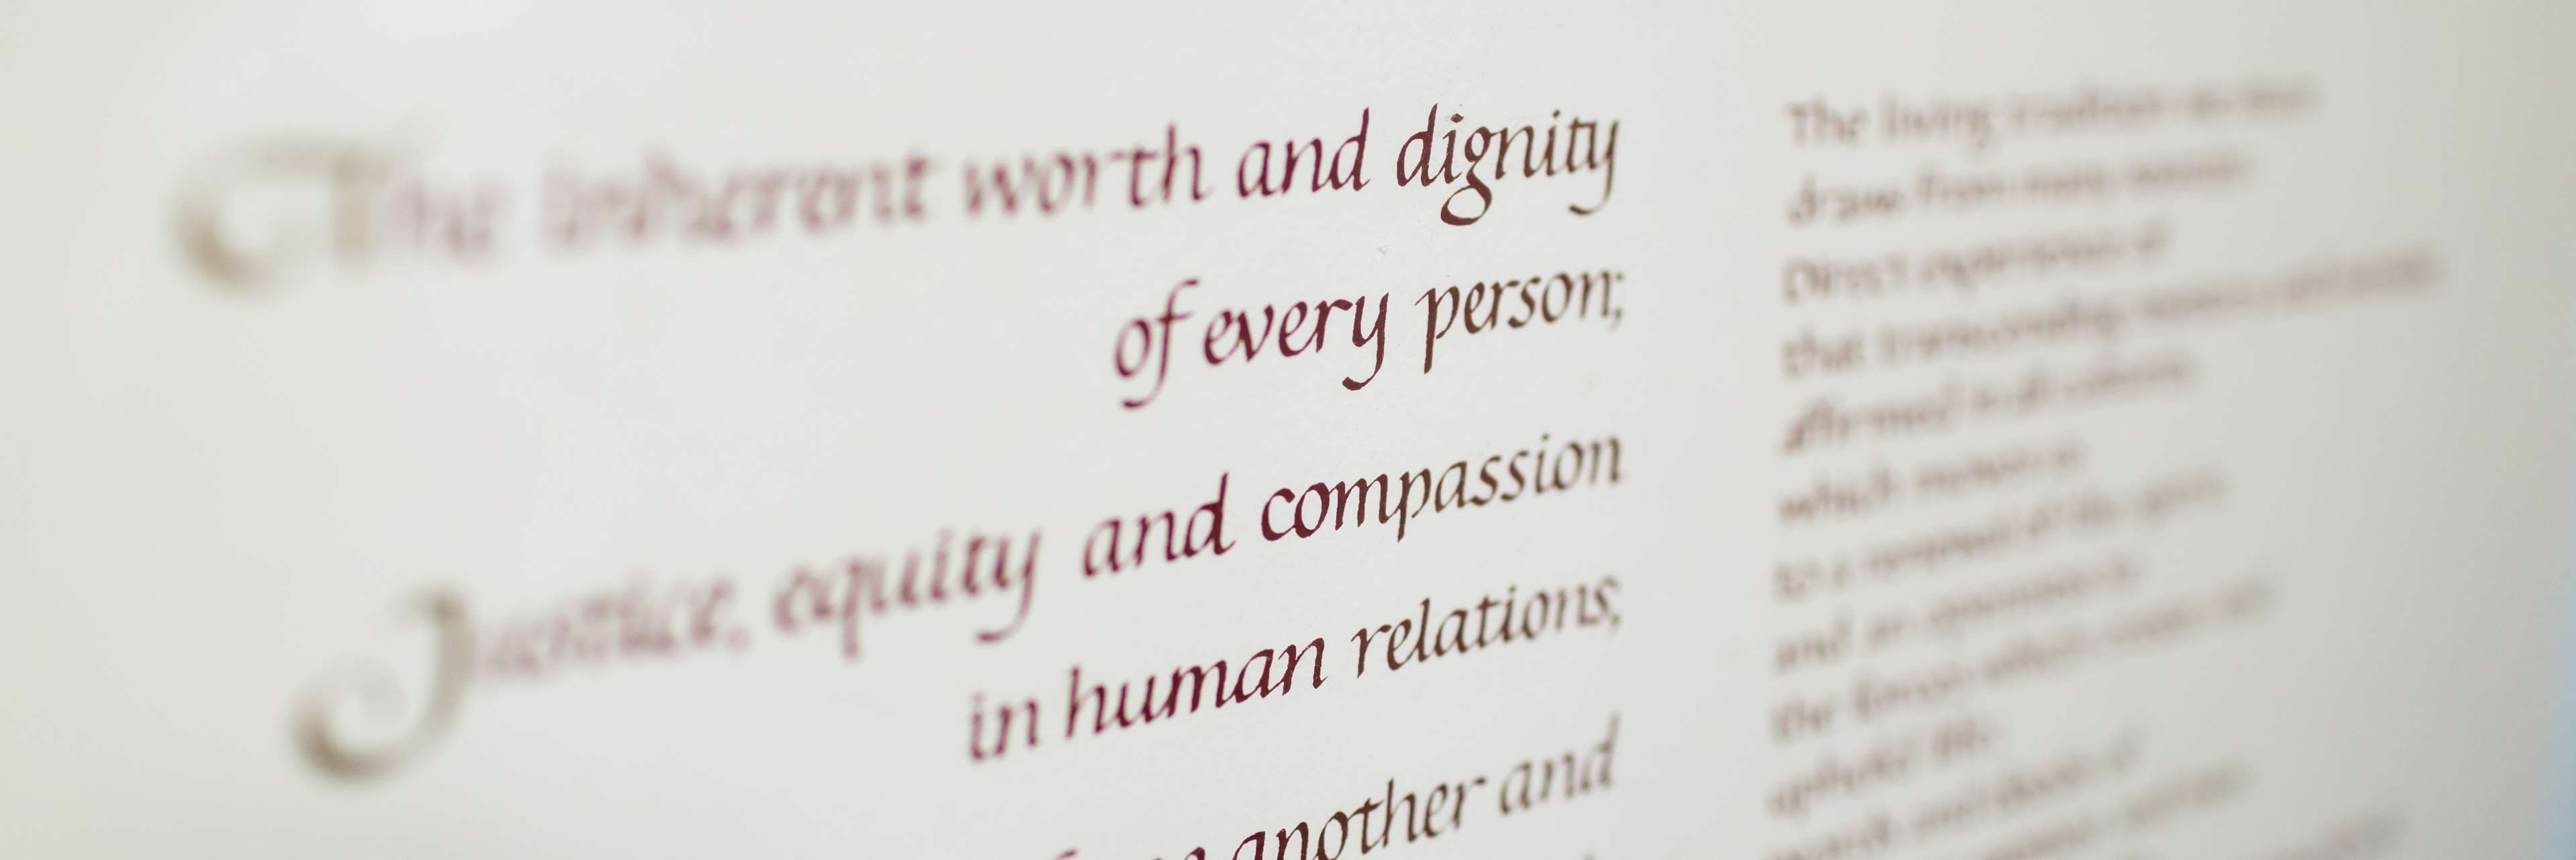 photo of a poster of Unitarian Universalist Principles